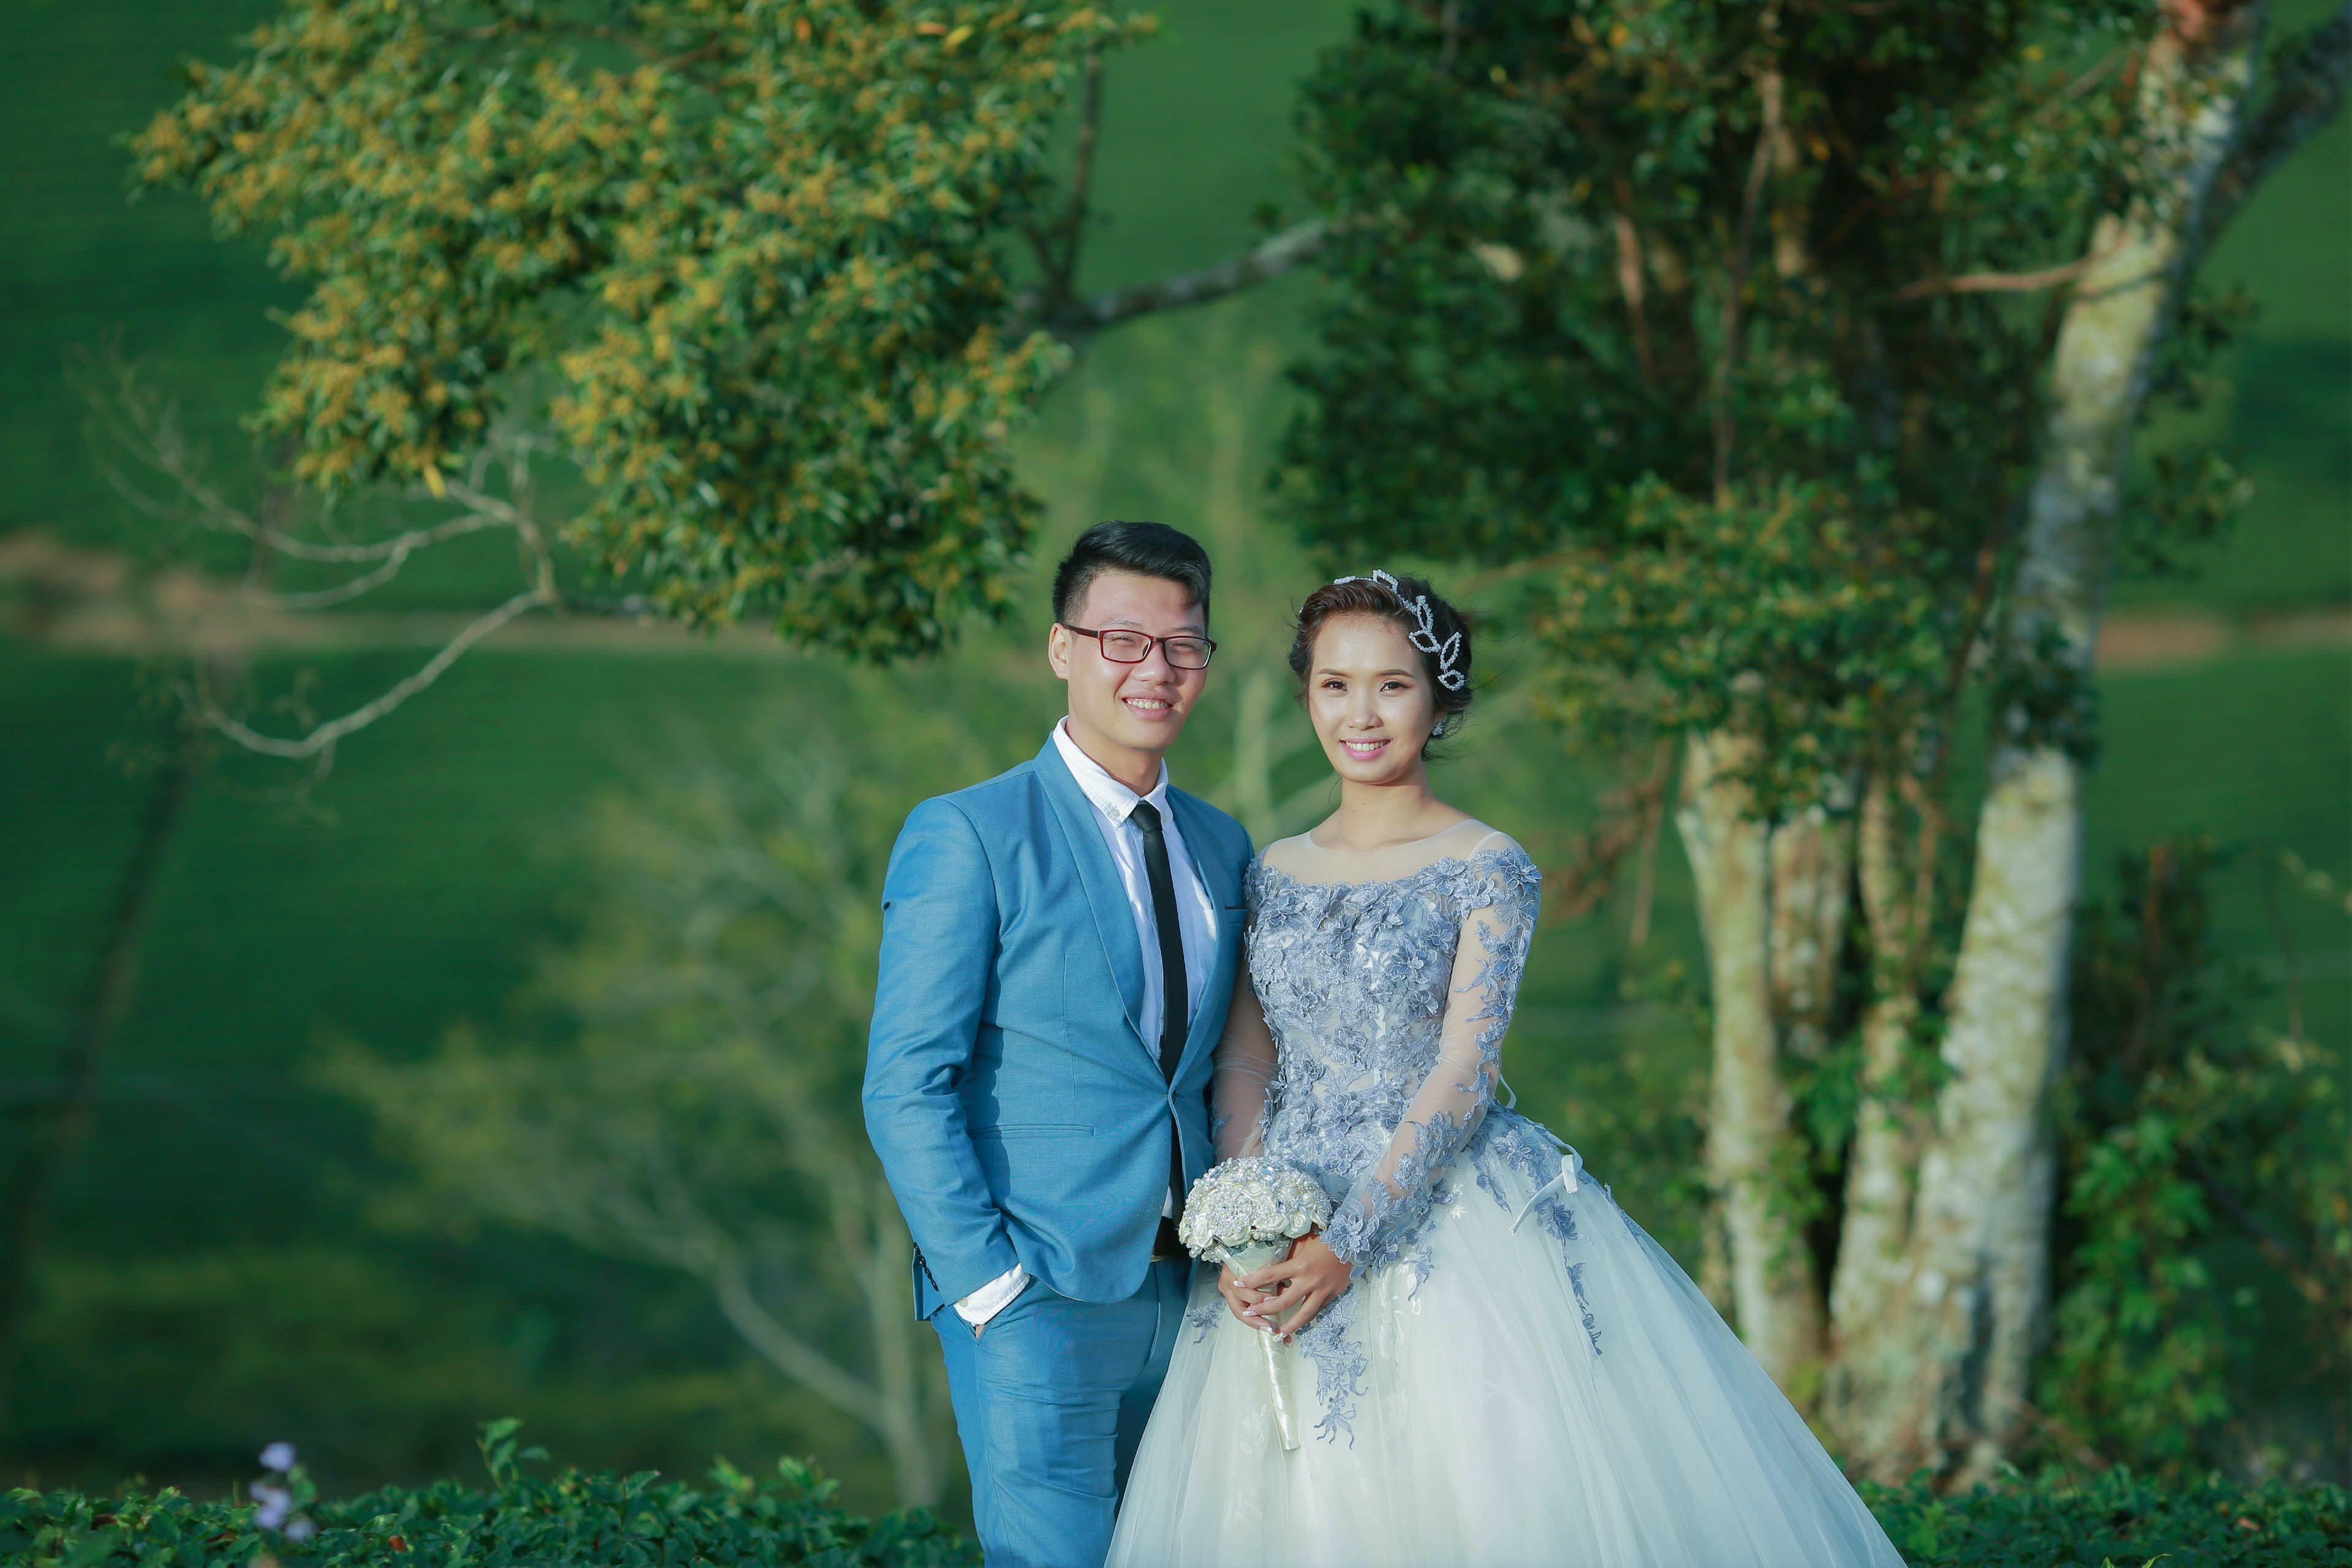 A bride and groom smile at the camera in front of green trees and bushes in Vietnam